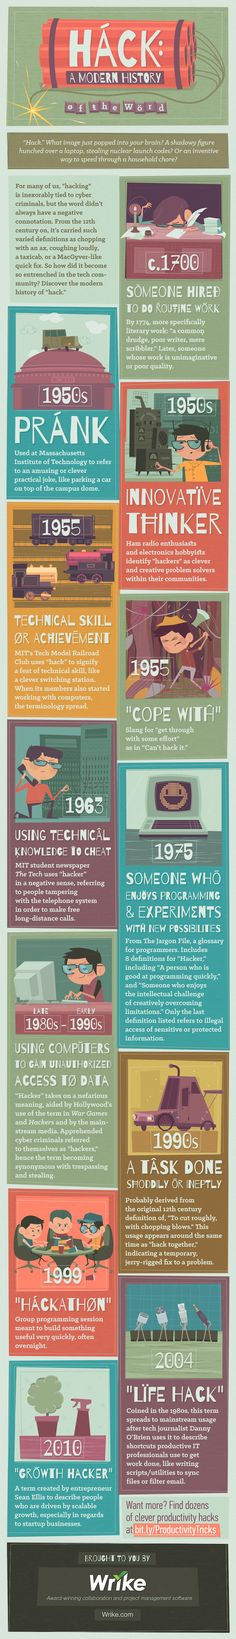 "The History of the Word ""Hack"" (Infographic)"